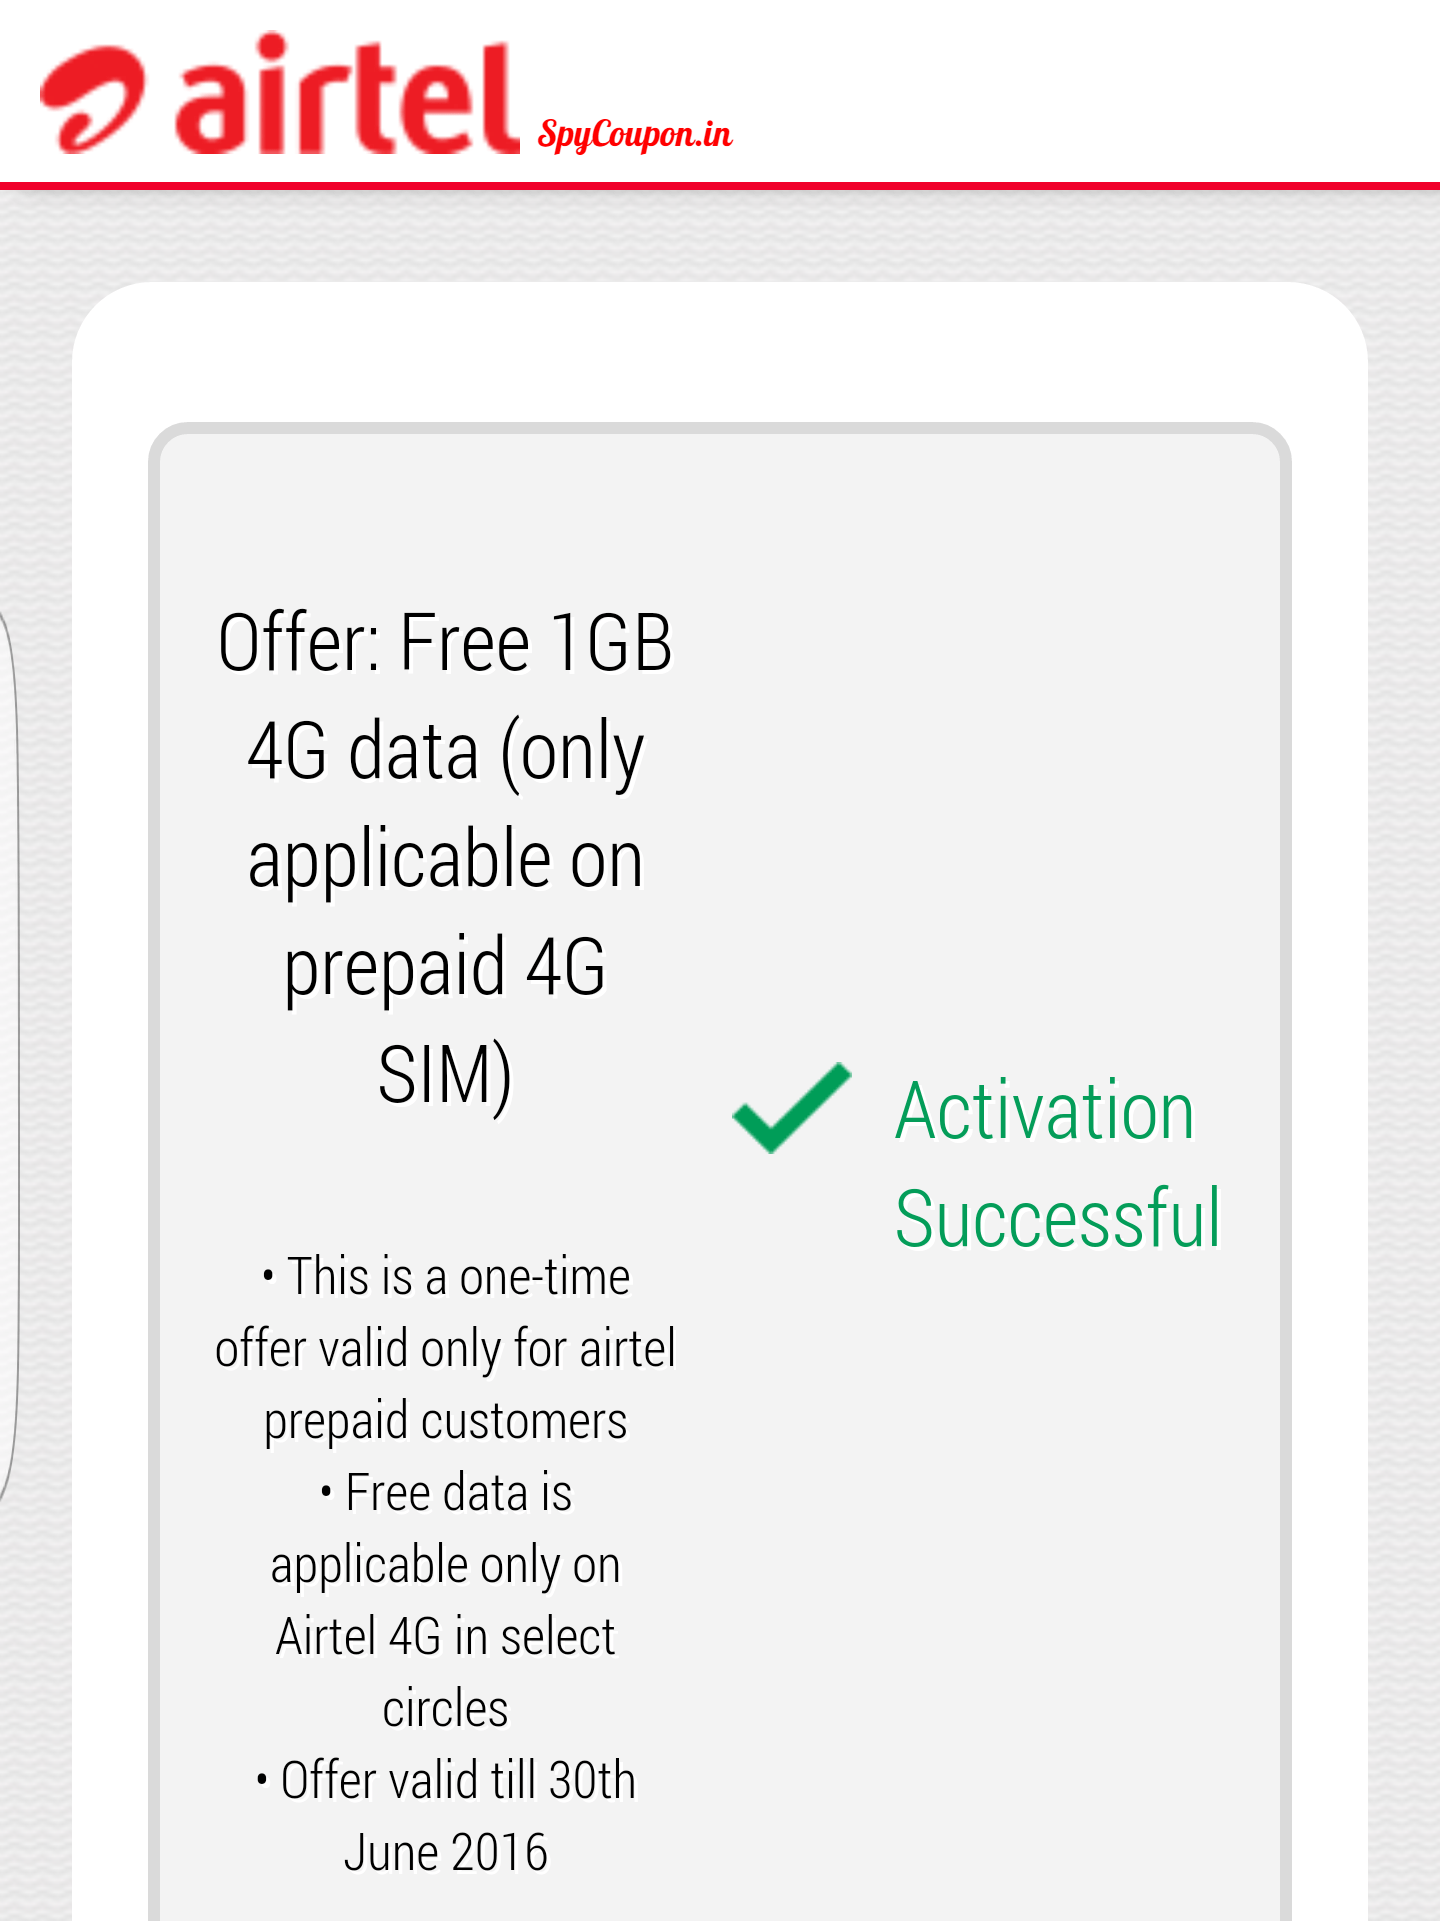 Airtel 4G Offer : Get 1 GB Free Data Instantly! | SpyCoupon